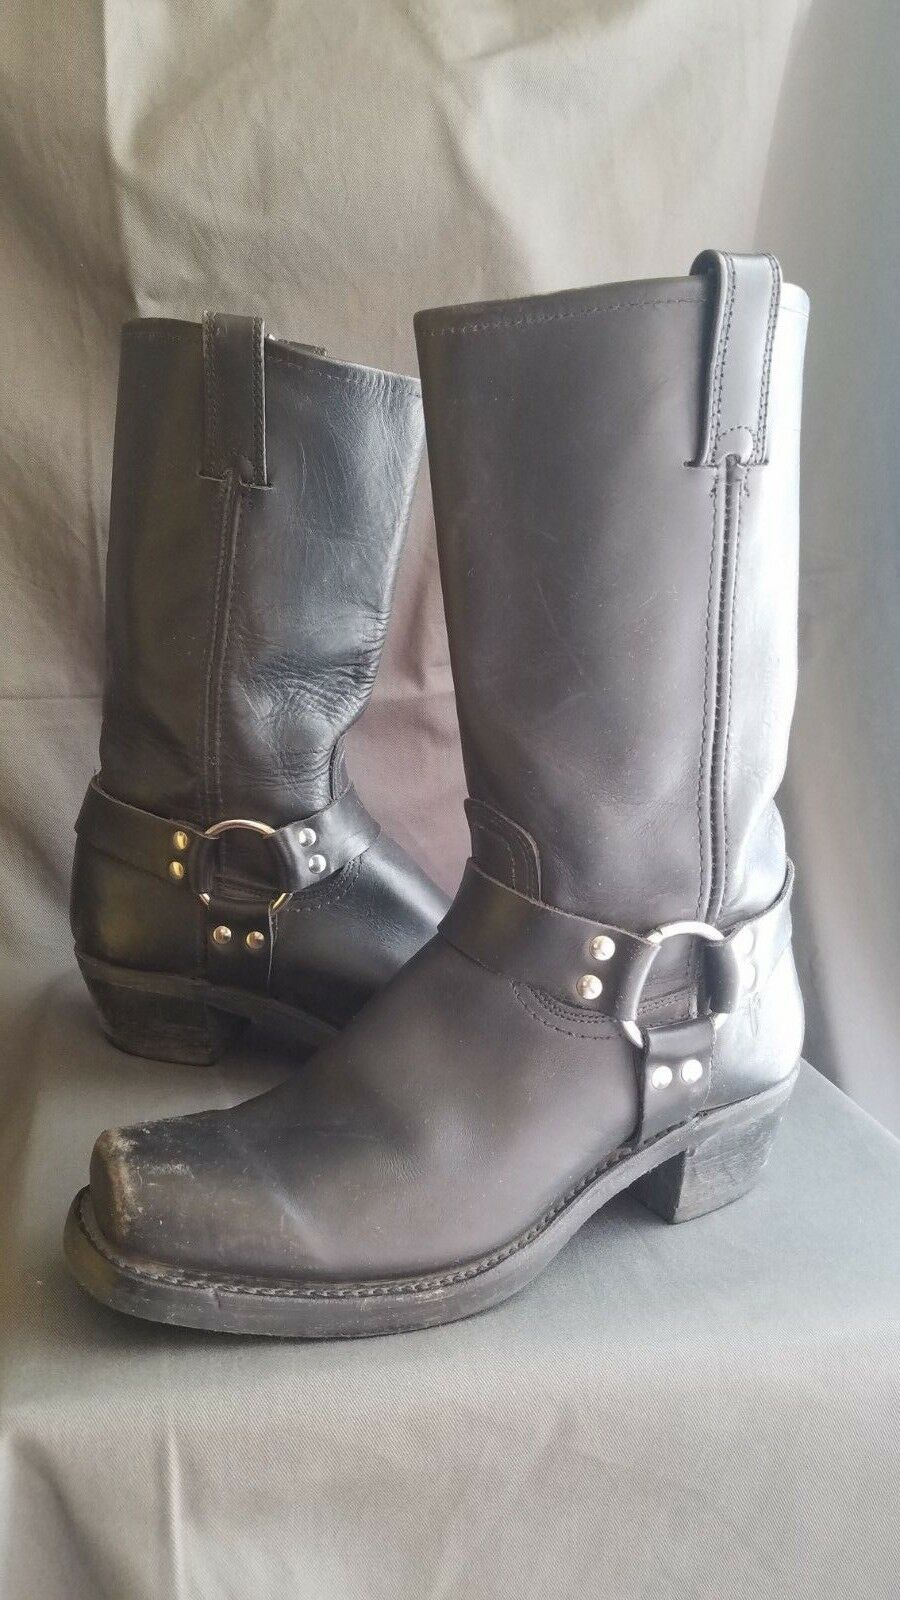 Women's Black Heritage Rustic Leather FRYE HARNESS 12R Motorcycle Boots Sz-10M